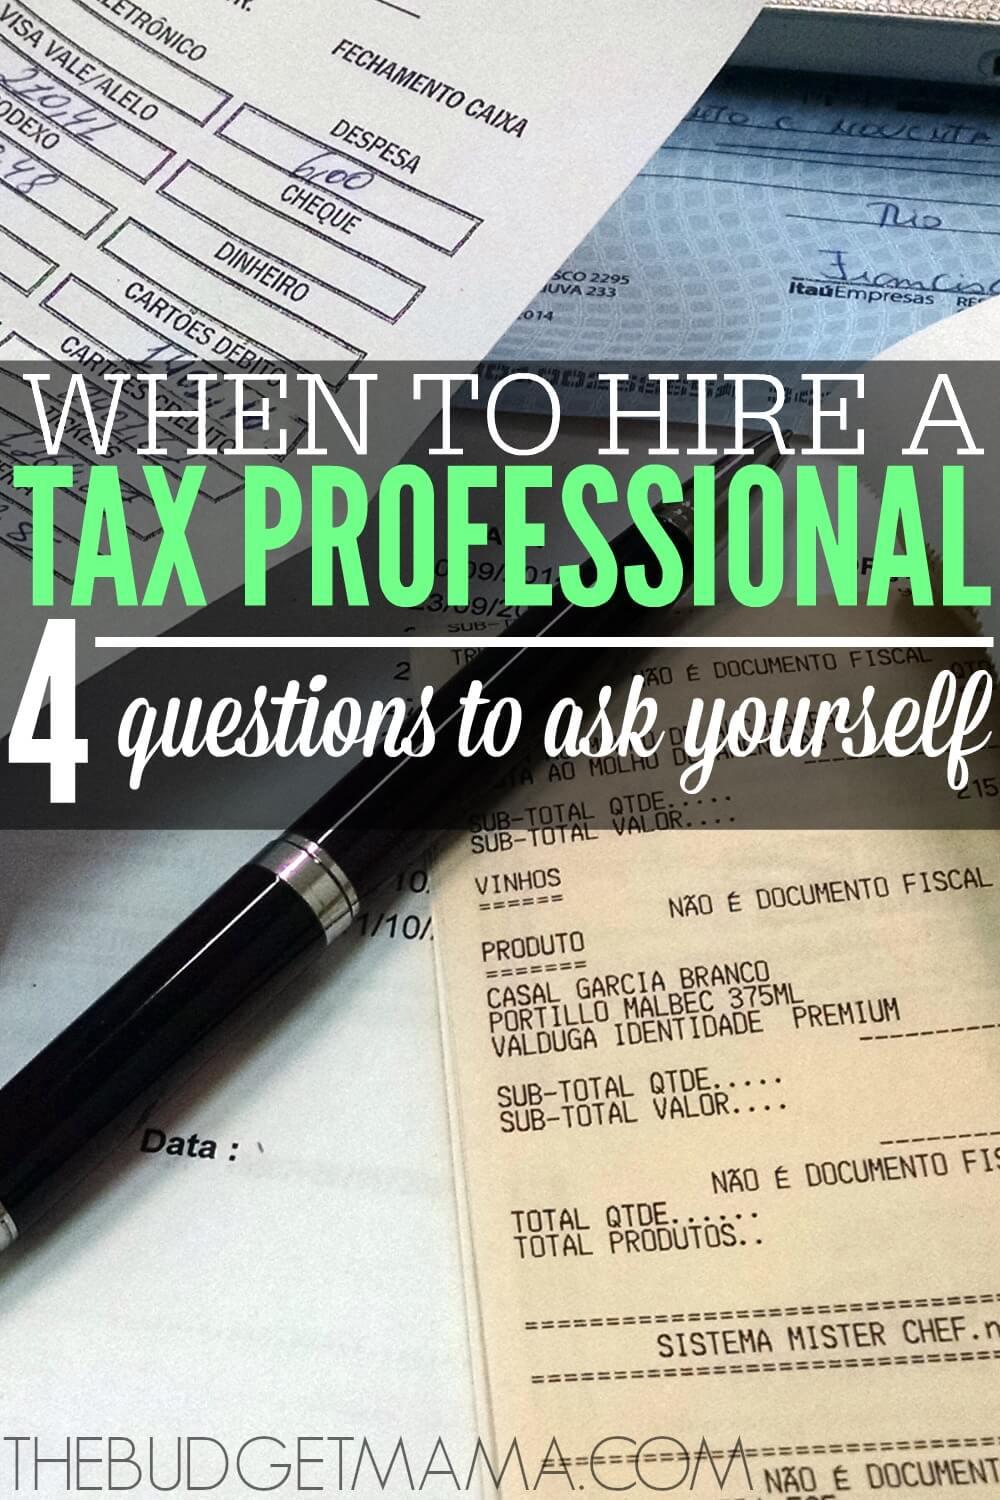 How to know when to hire a tax professional when should you hire a tax professional these four questions to ask yourself will help solutioingenieria Gallery